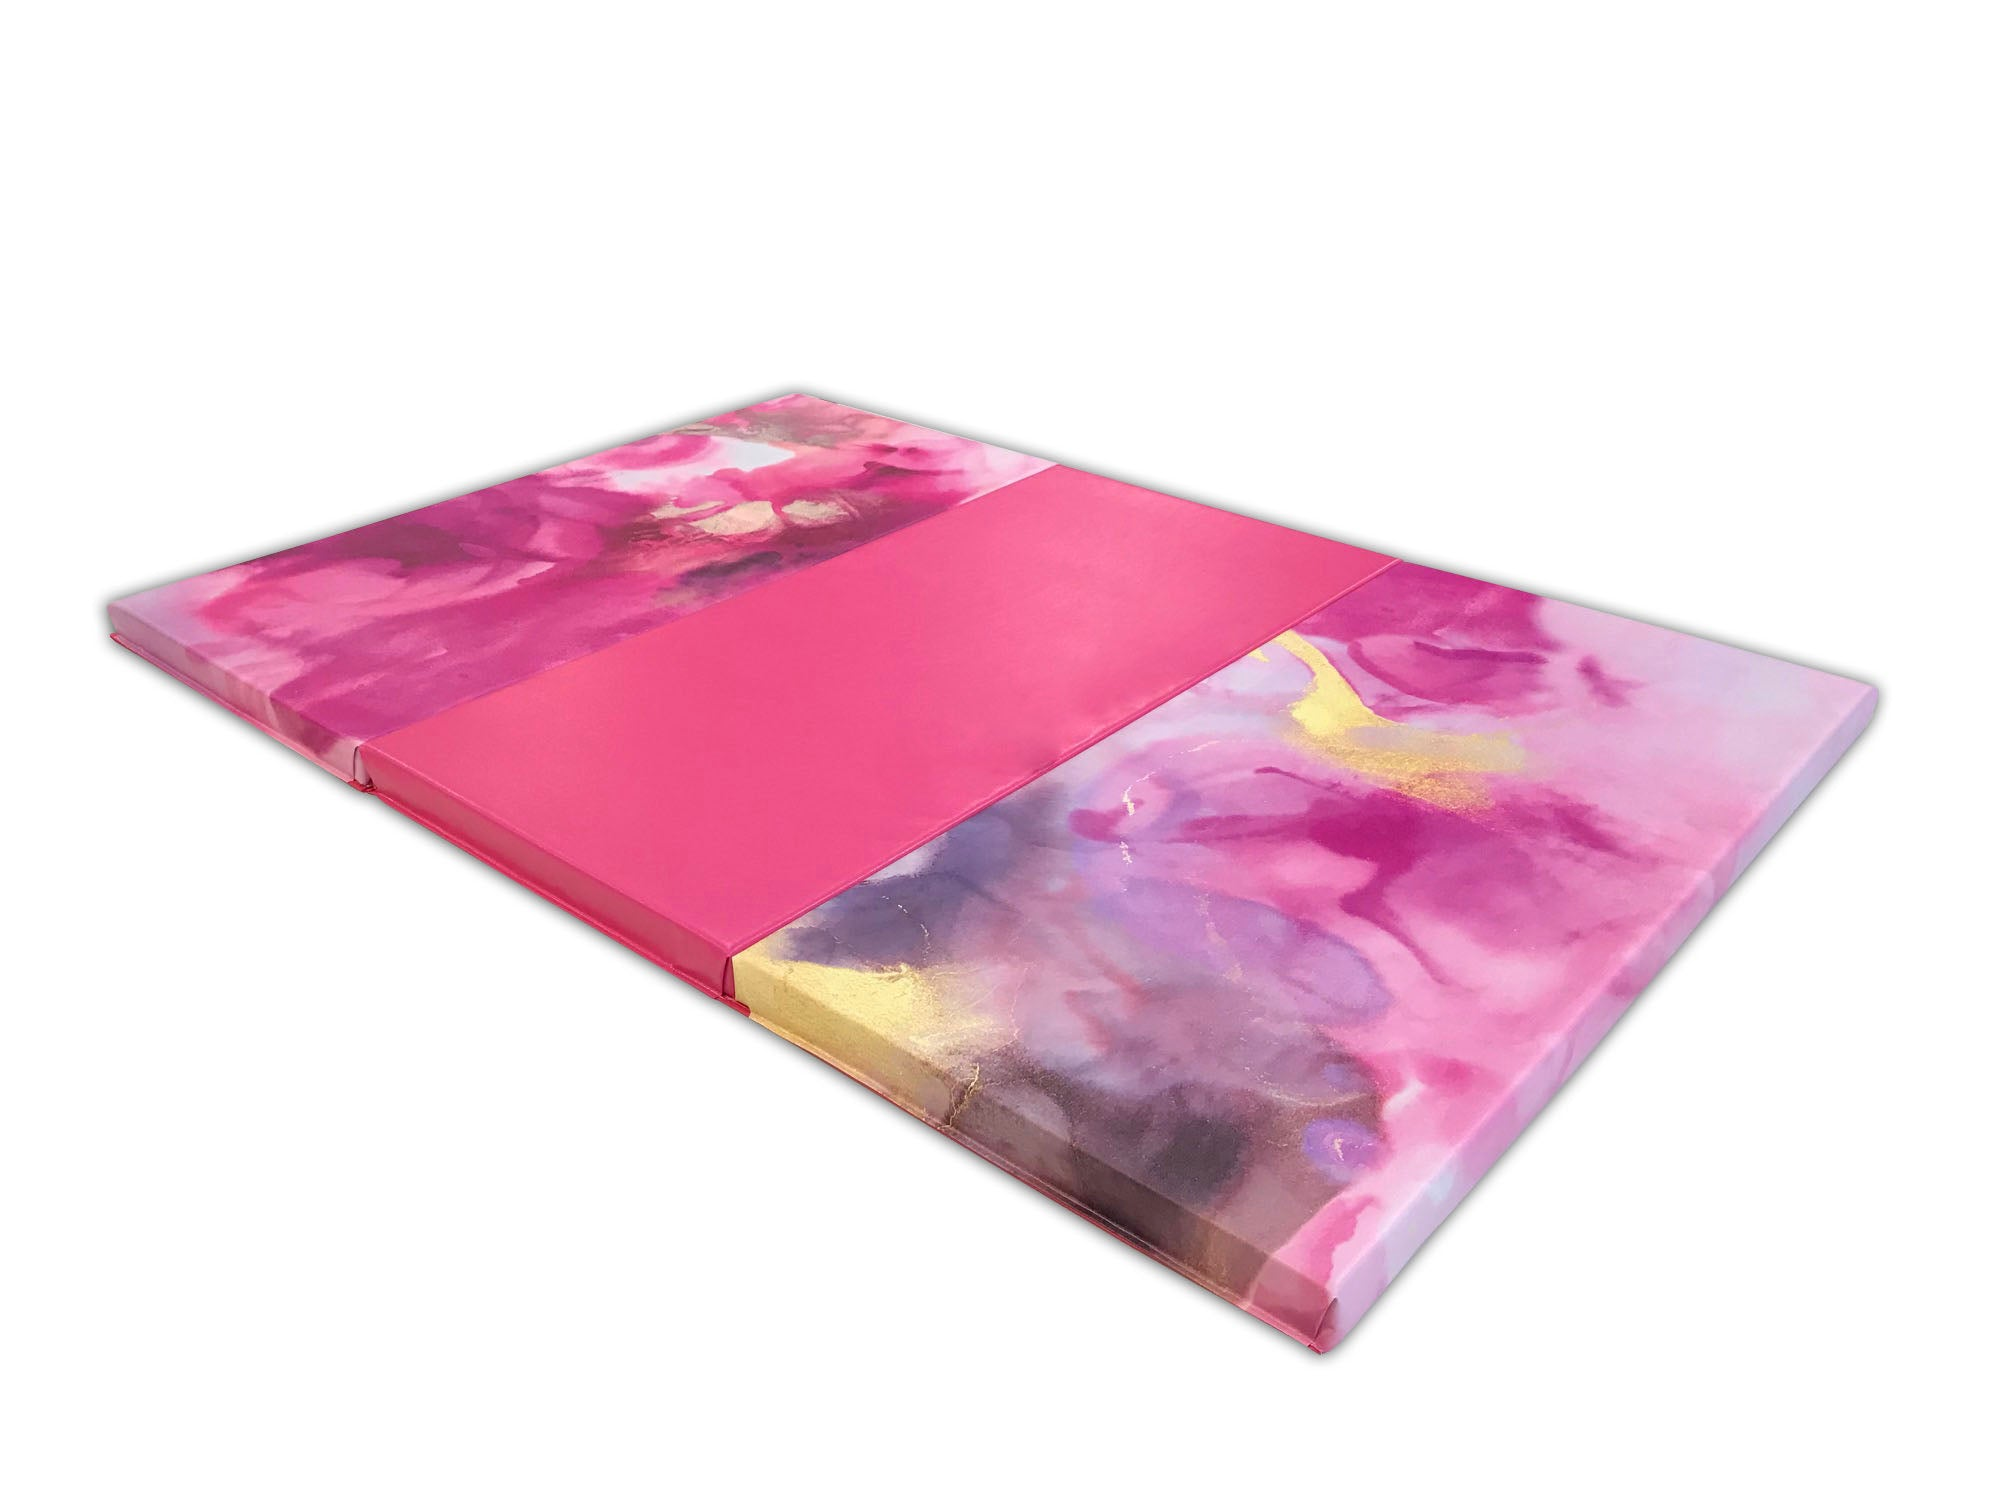 "Pink Watercolor 4' x 6' x 2"" Intermediate Level Folding Gymnastics Mat"